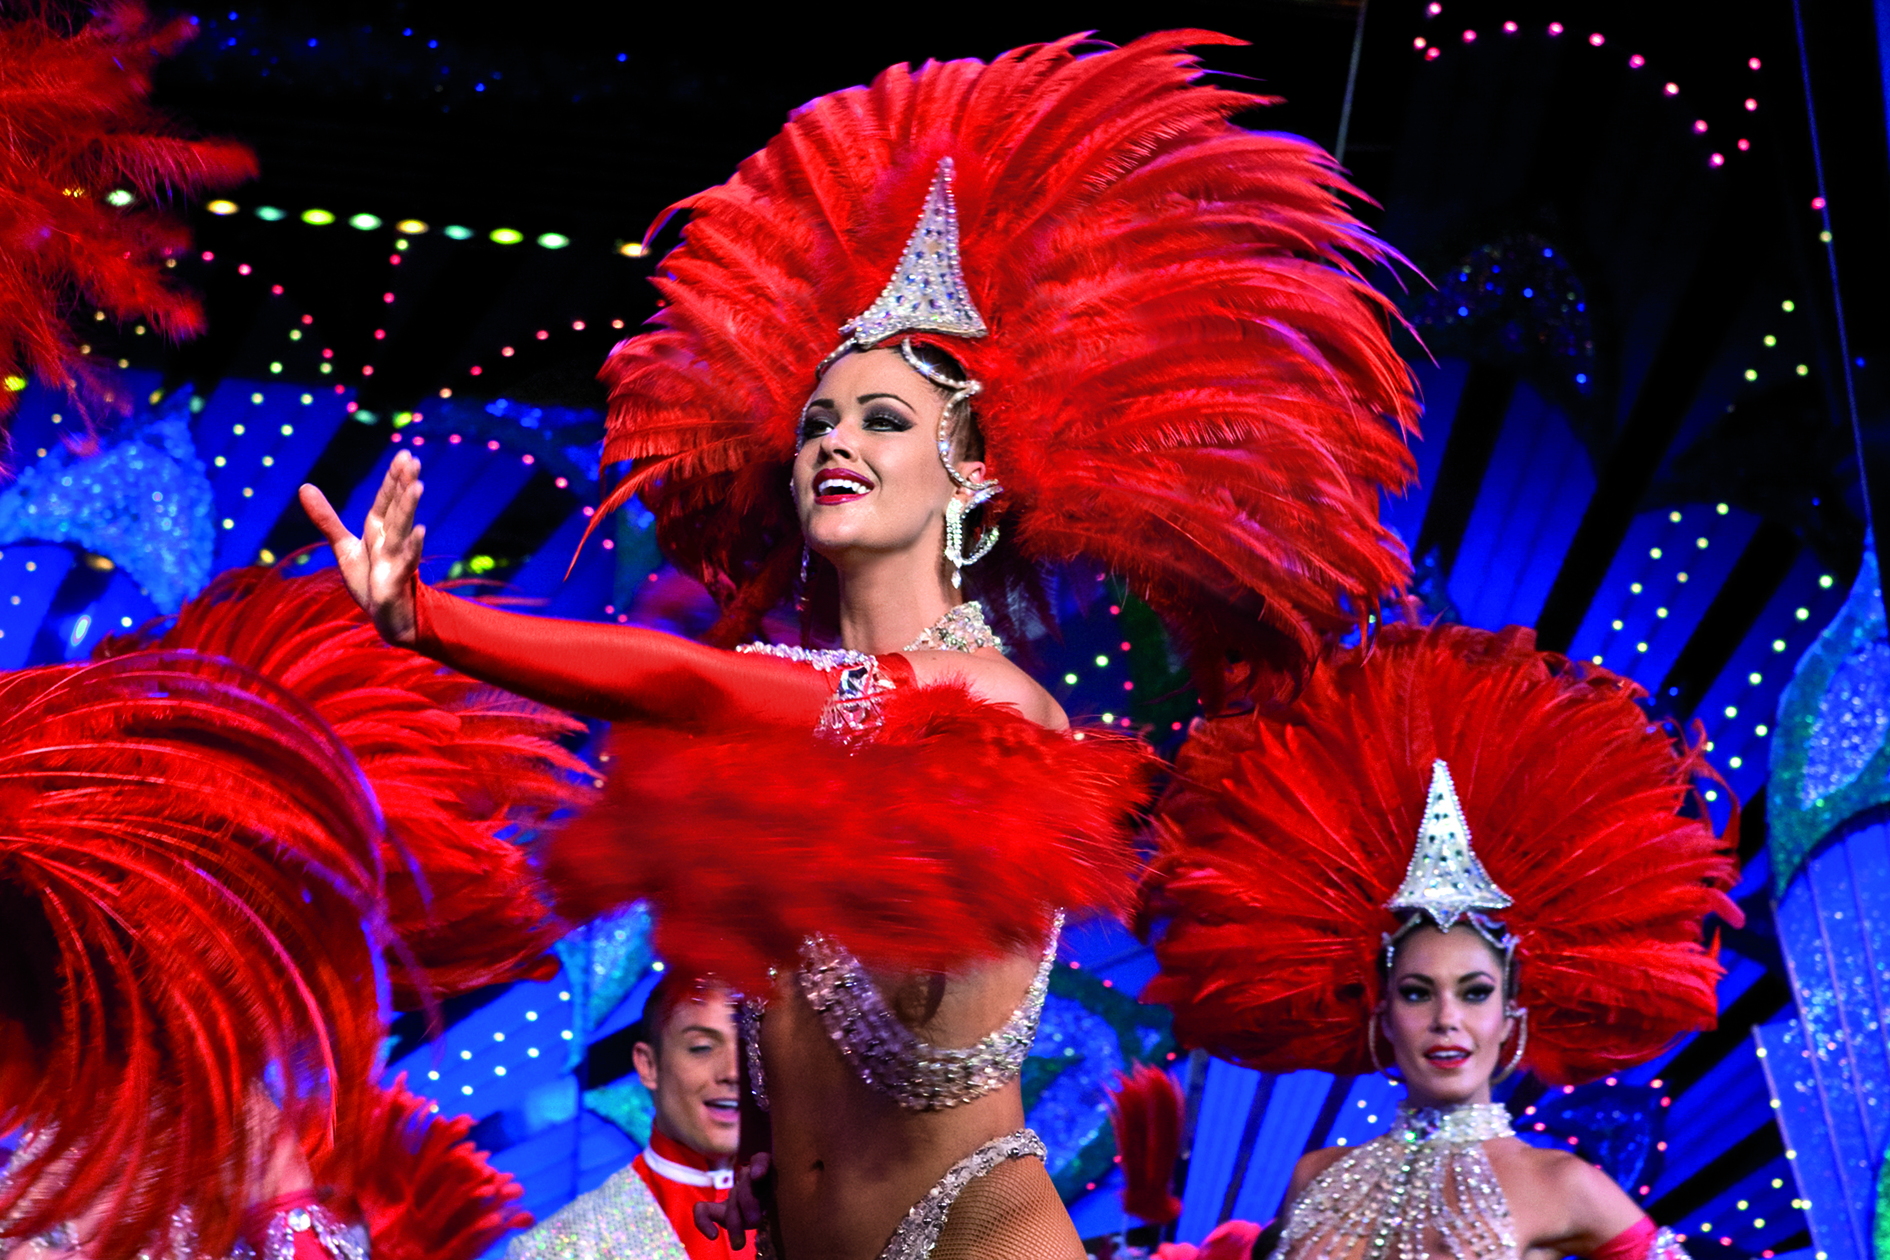 DEJEUNER – SPECTACLE AU MOULIN ROUGE